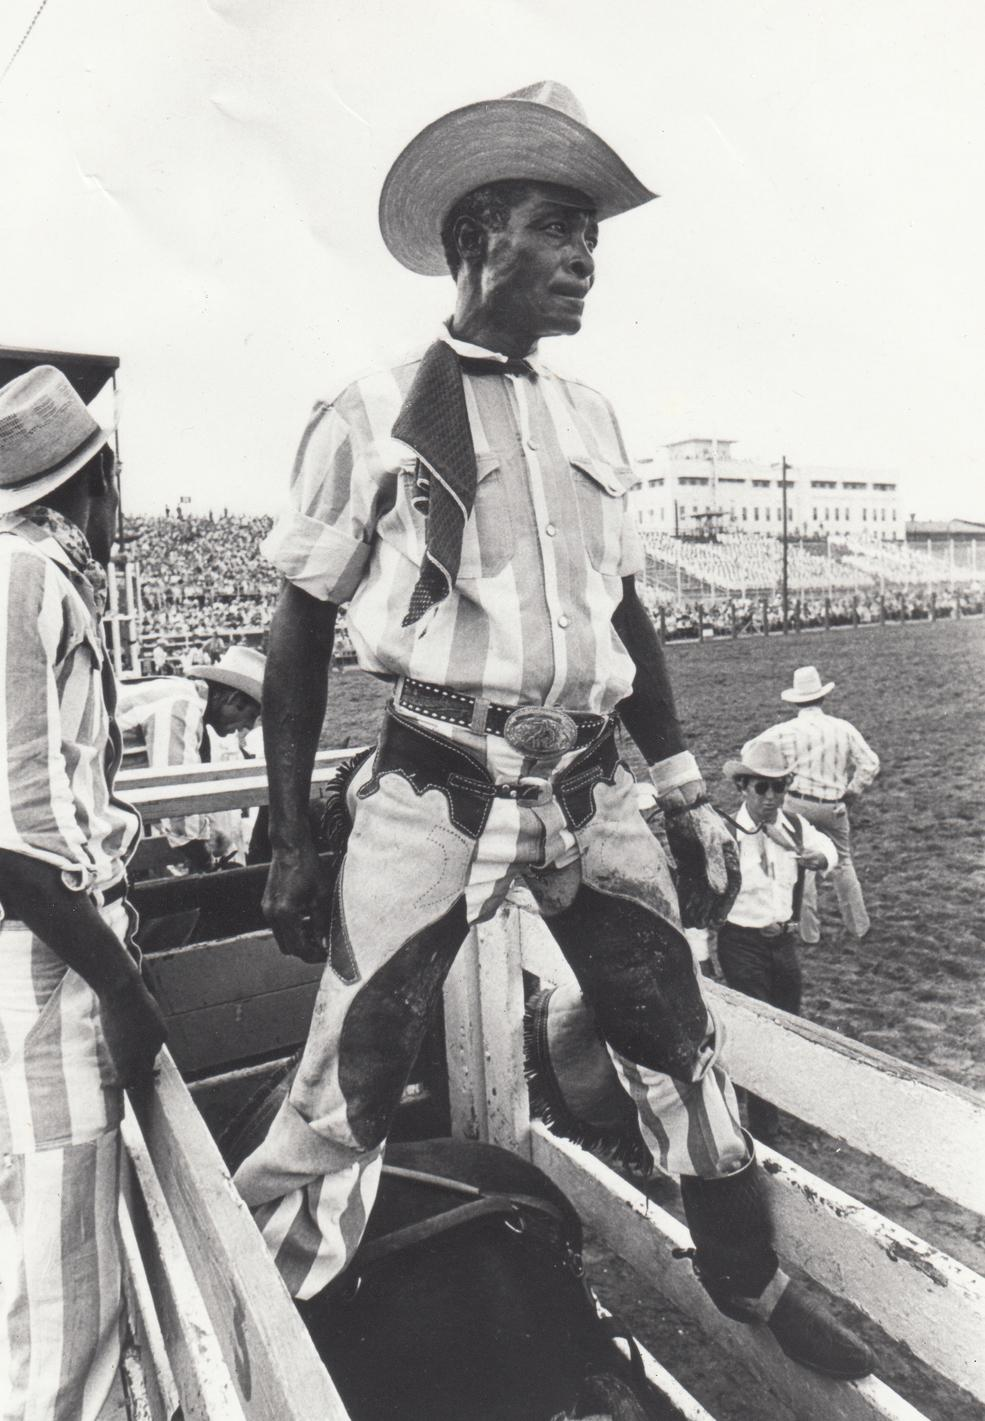 Willie Craig was 56 years old when he won the Top Hand Buckle in 1976.